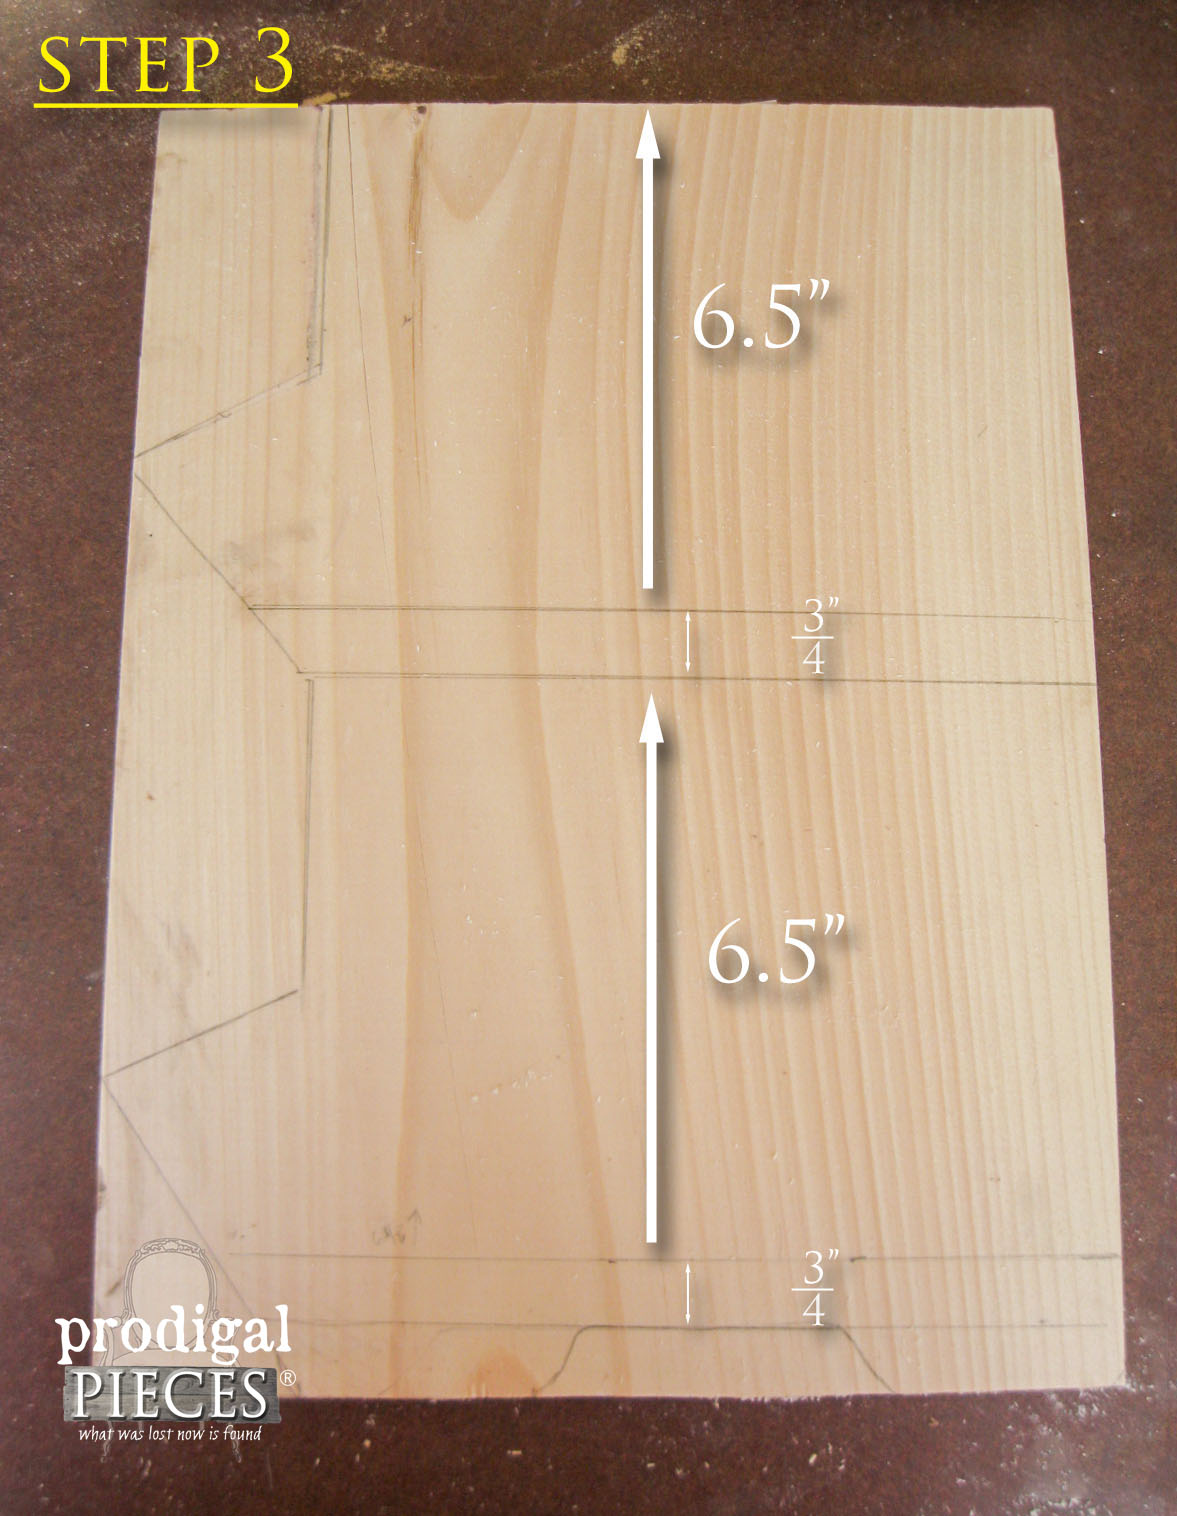 Step 3 of Building Wooden Bin by Prodigal Pieces | www.prodigalpieces.com